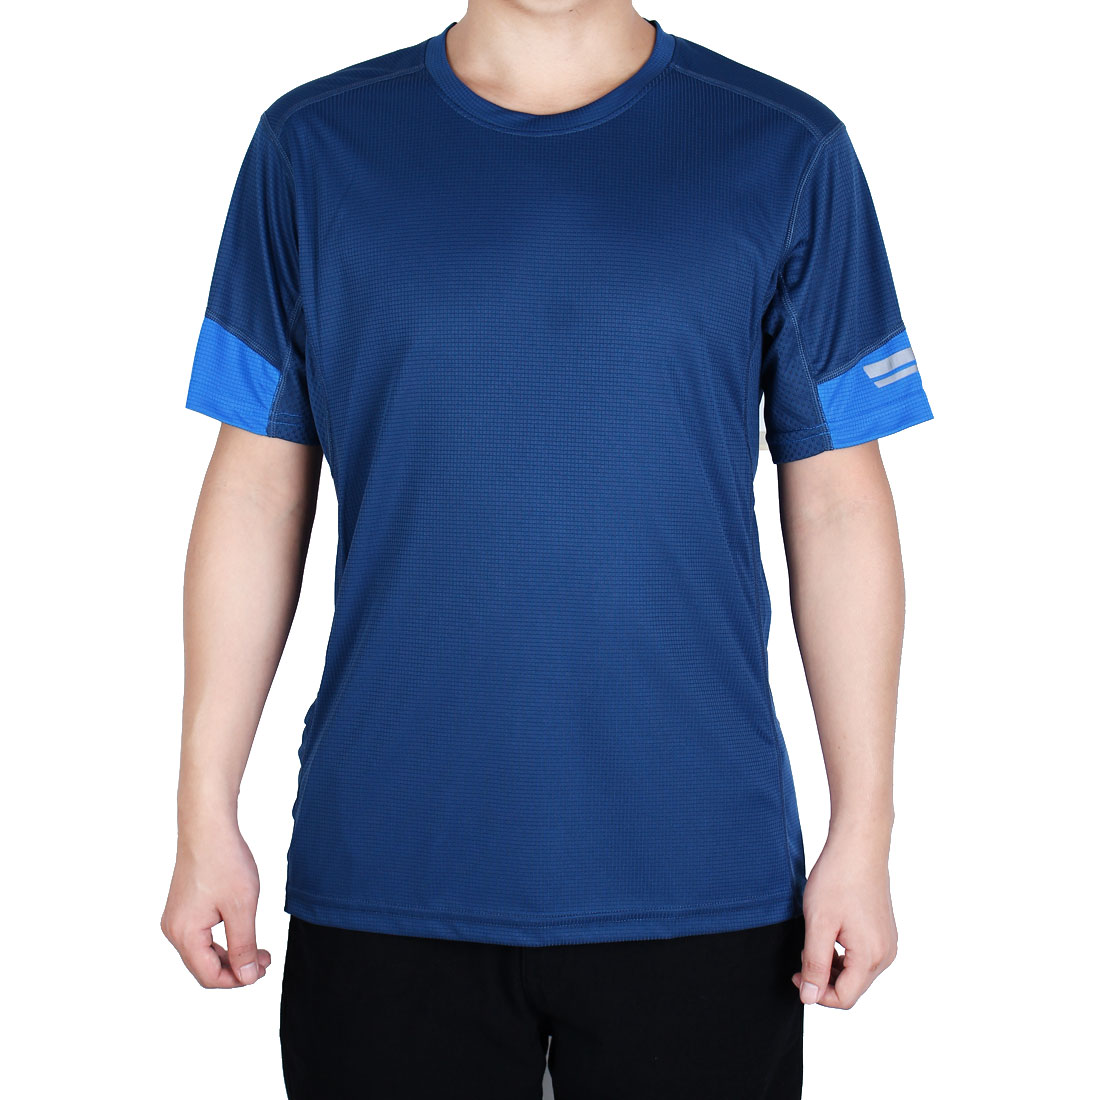 Men Short Sleeve Clothes Casual Wear Tee Stretchy Sports T-shirt Navy Blue XL